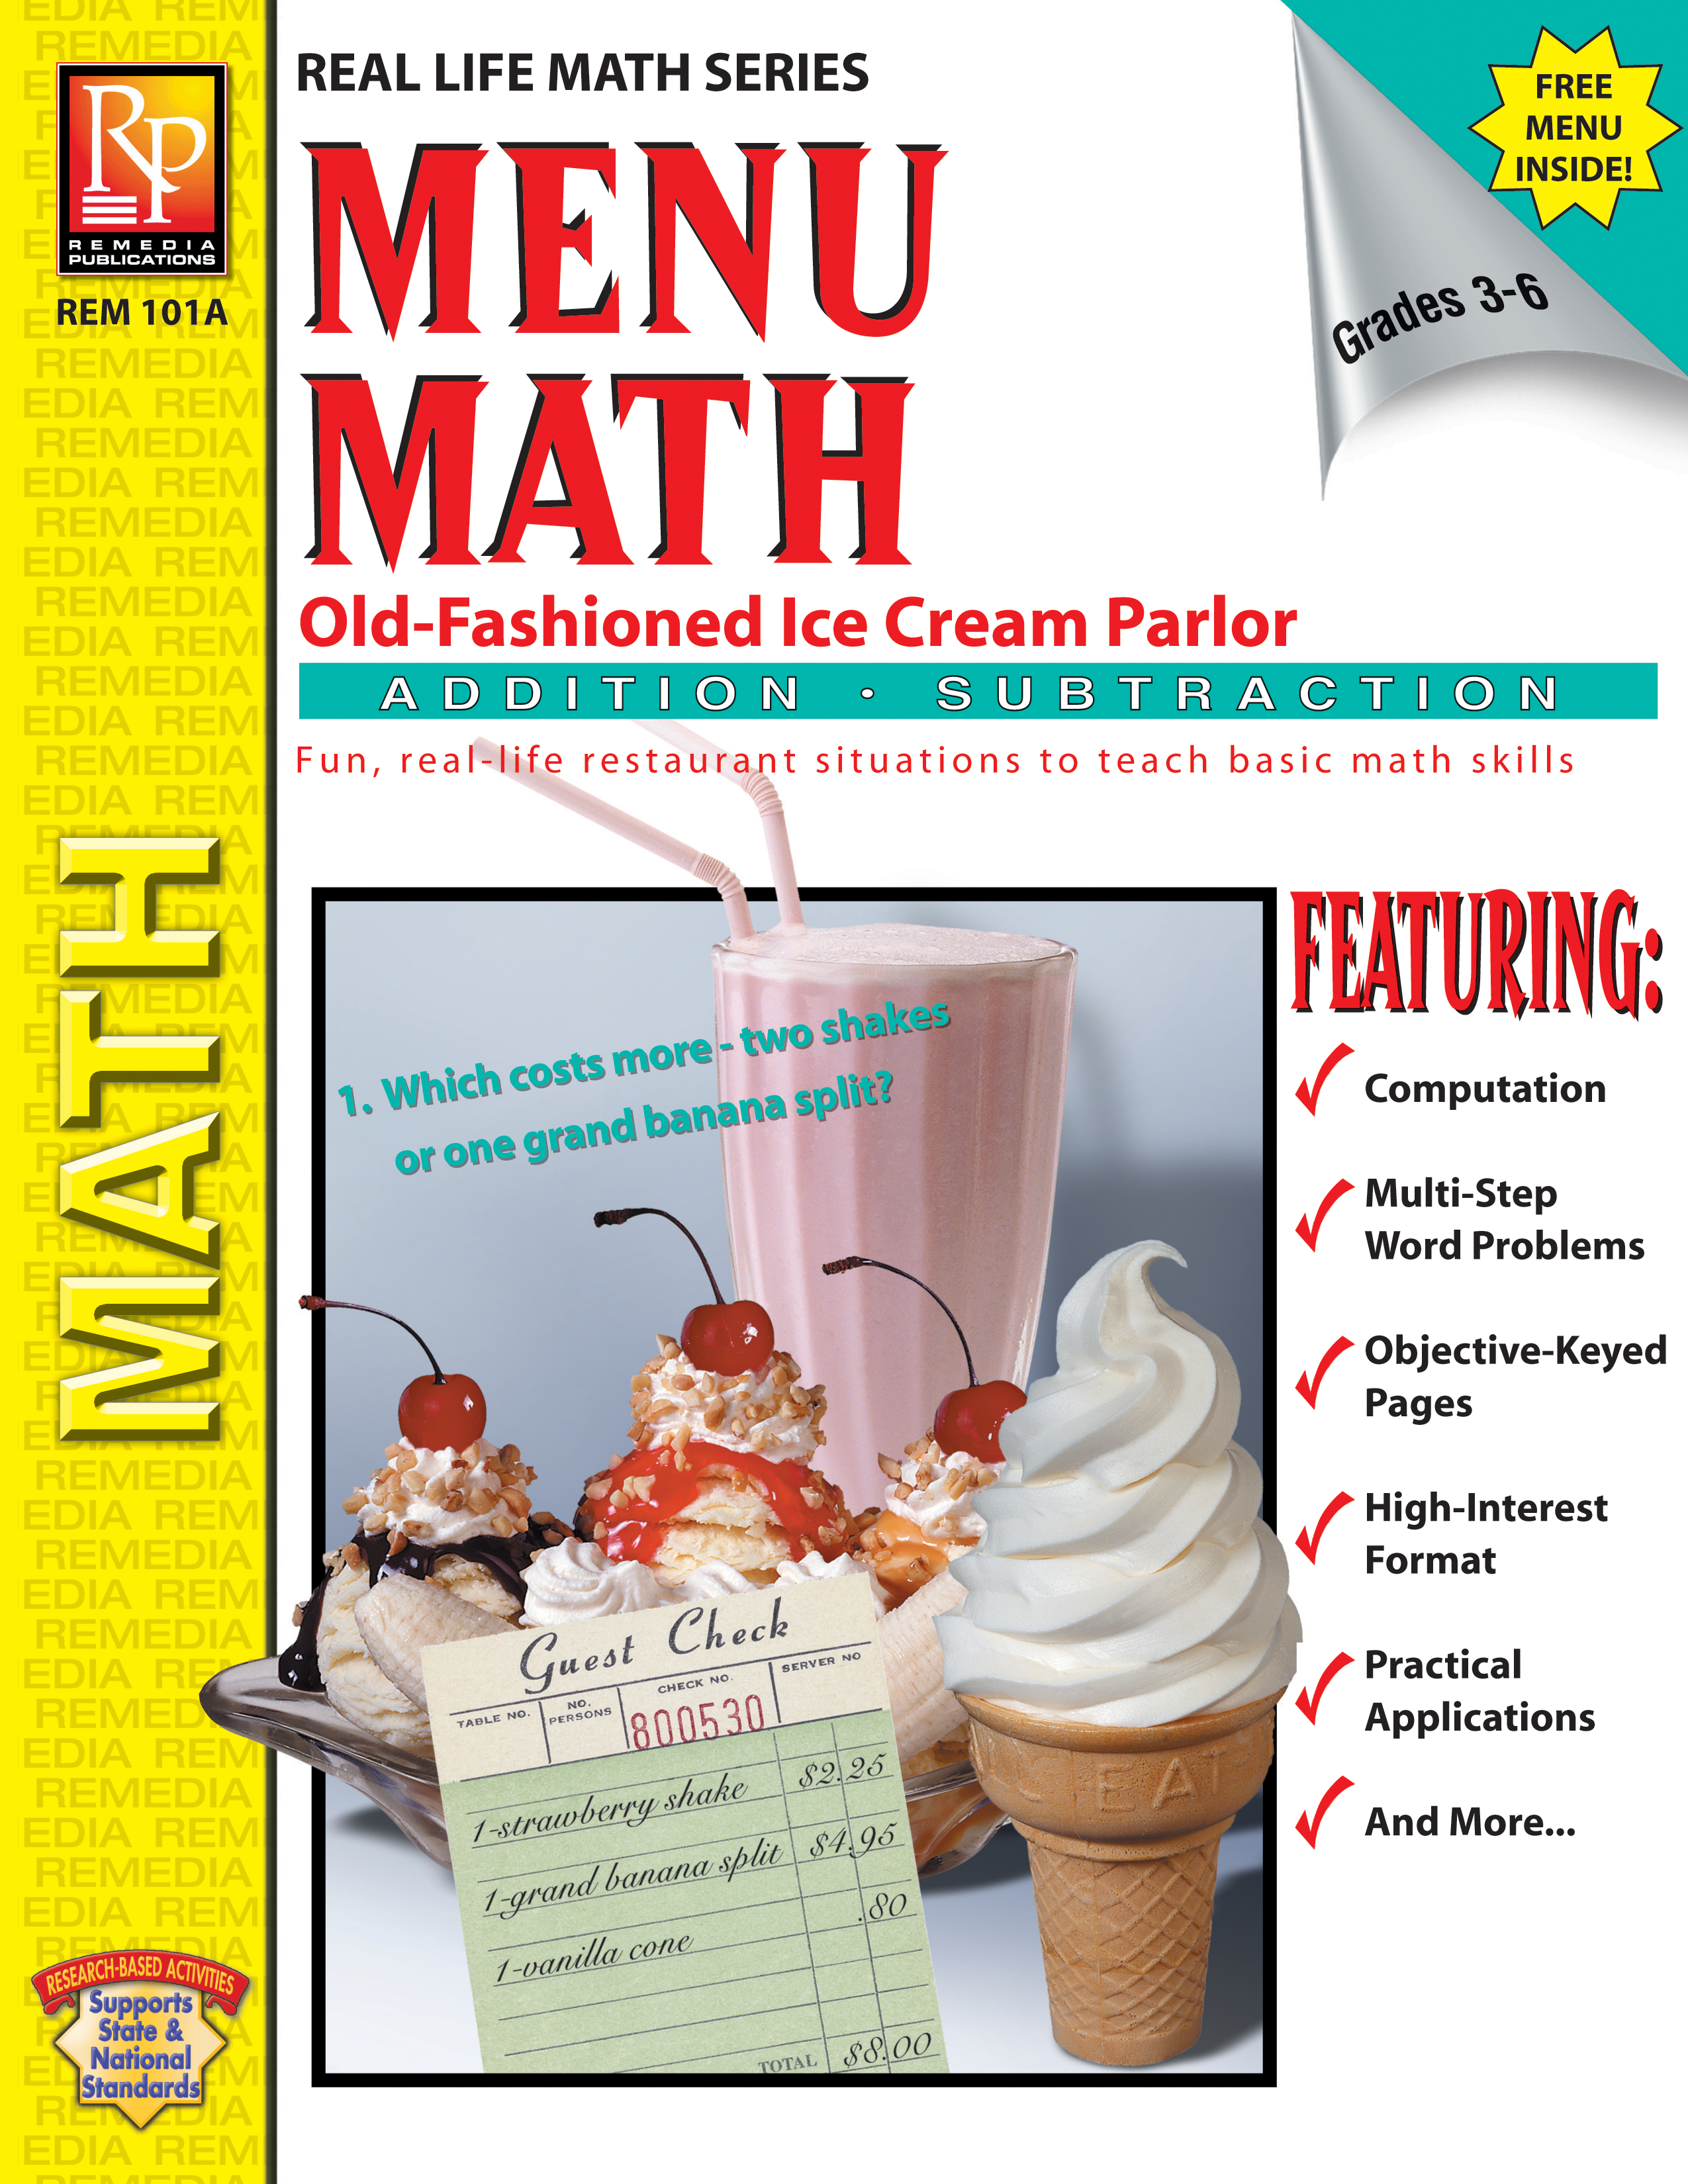 Menu Math Old Fashioned Ice Cream Parlor Addition Subtraction Ebook [ 3300 x 2550 Pixel ]